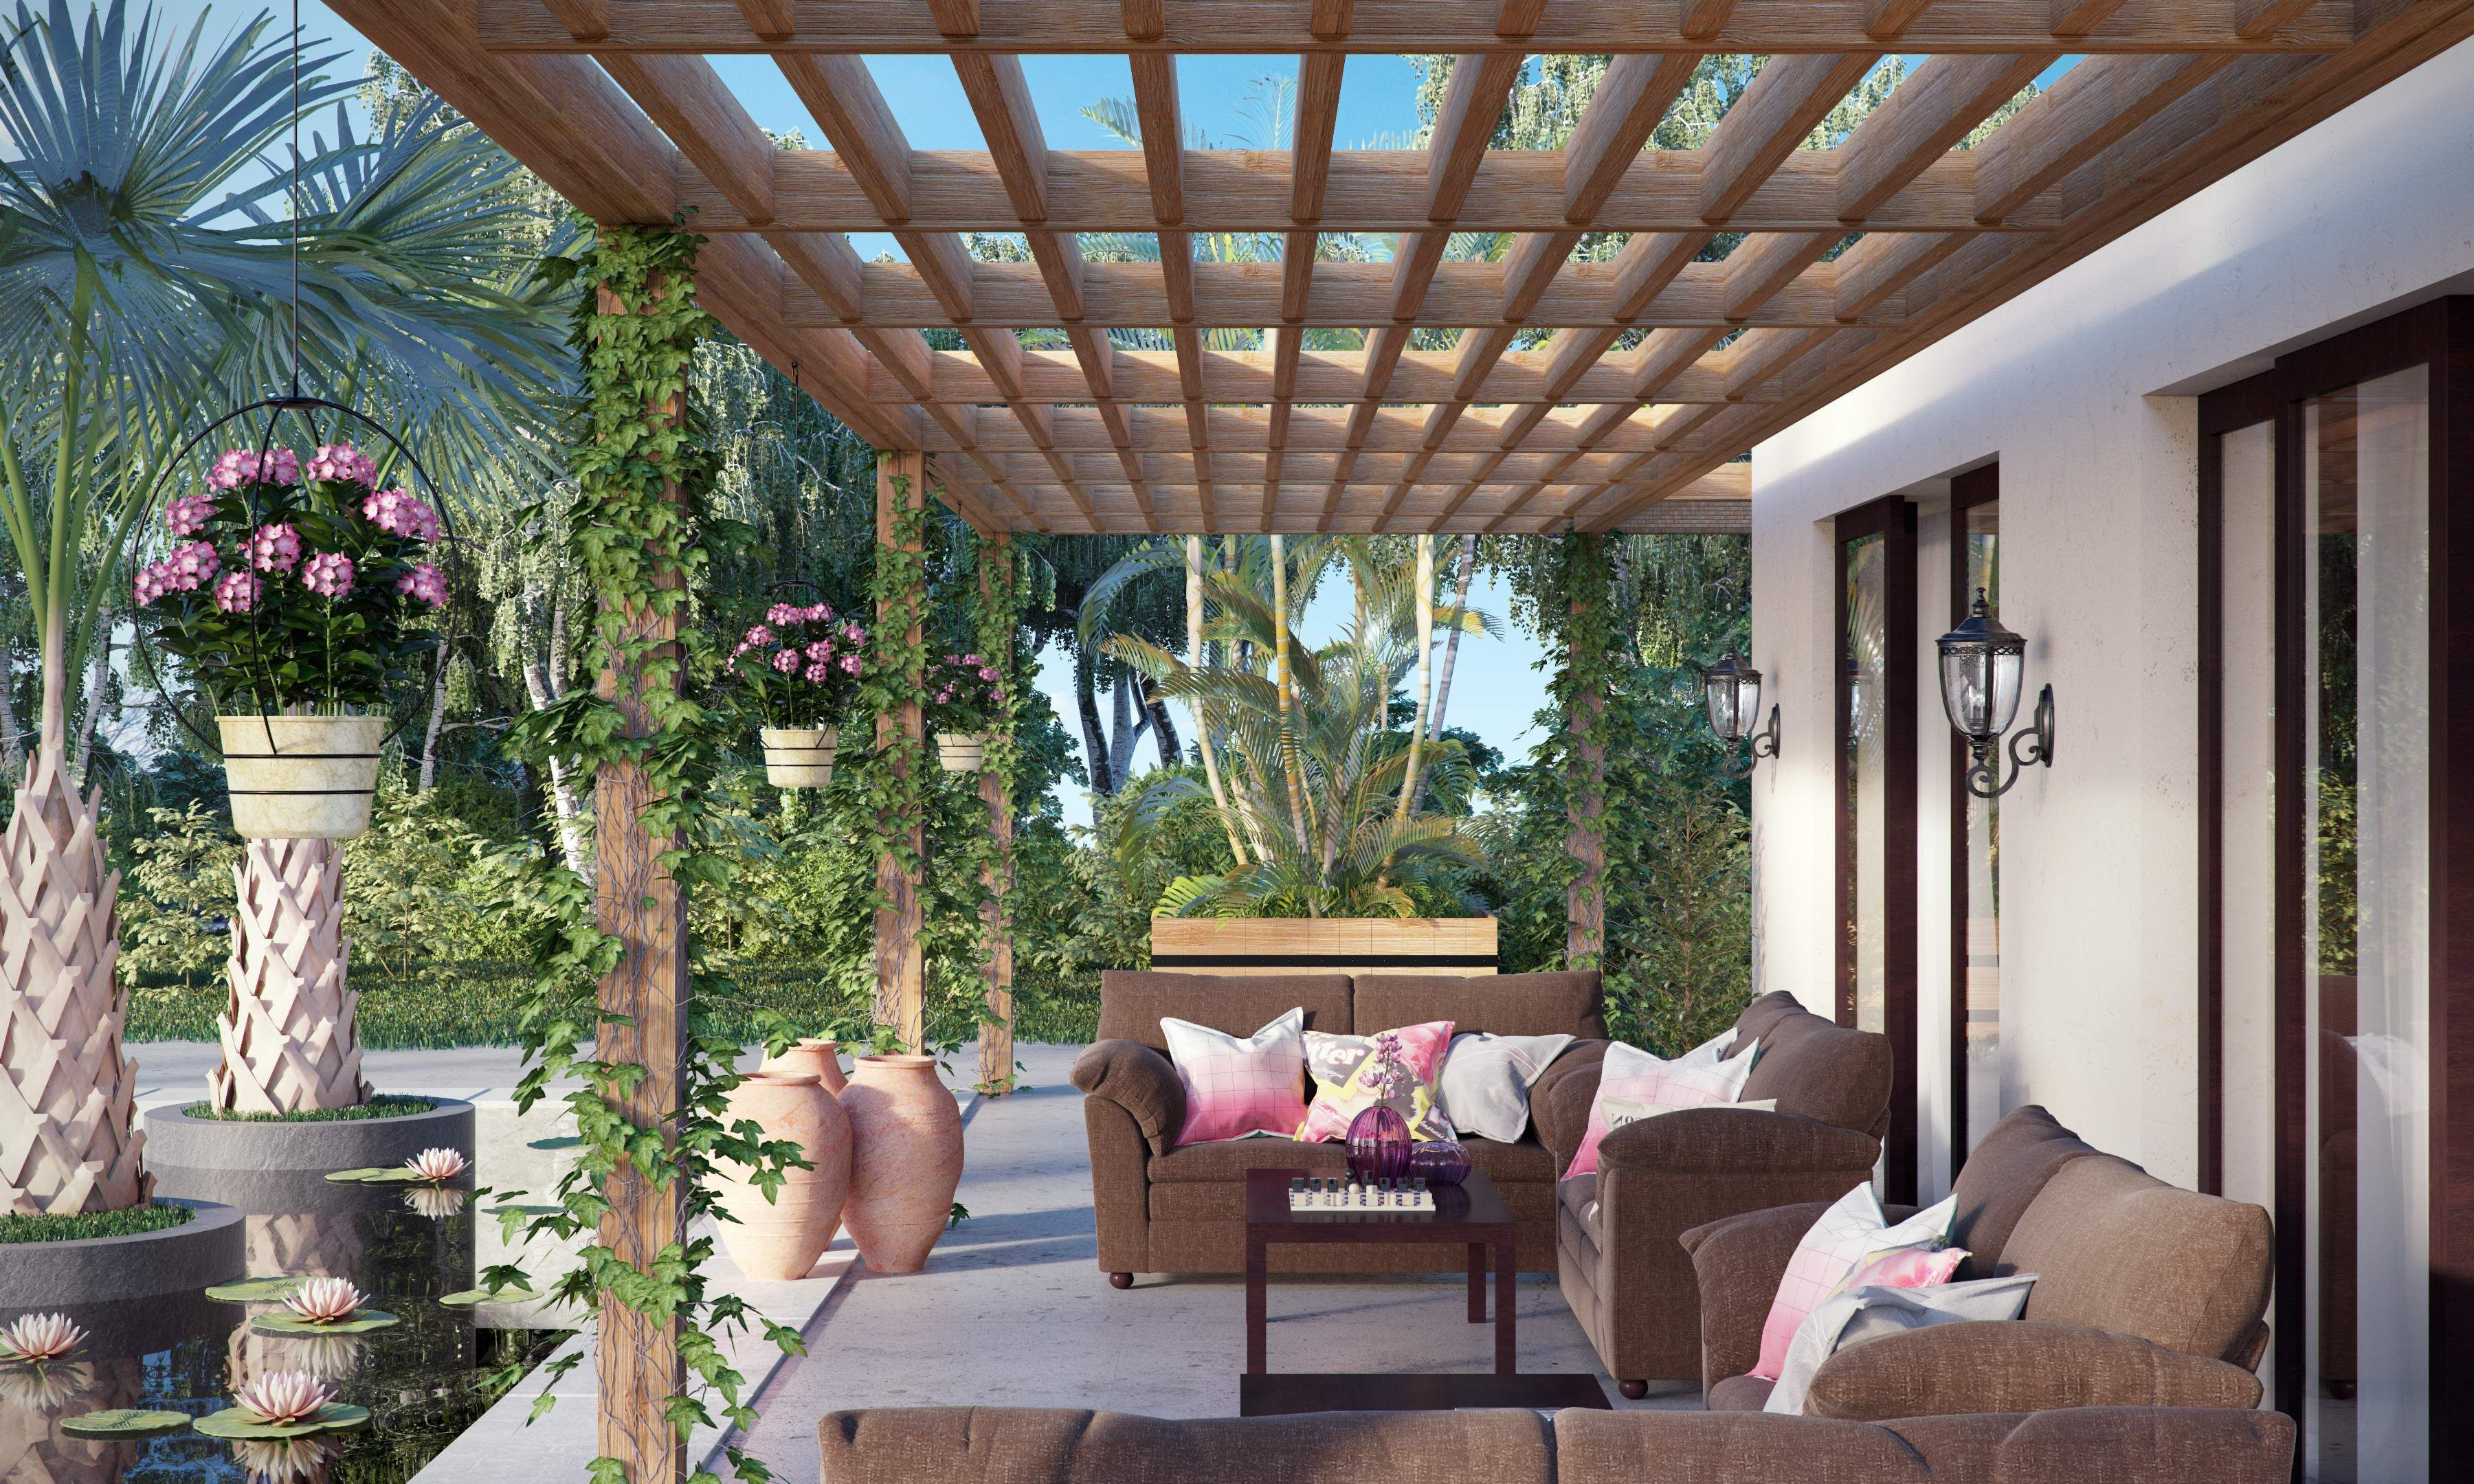 Bringing the outdoors in is set to be a huge interior design trend this summer